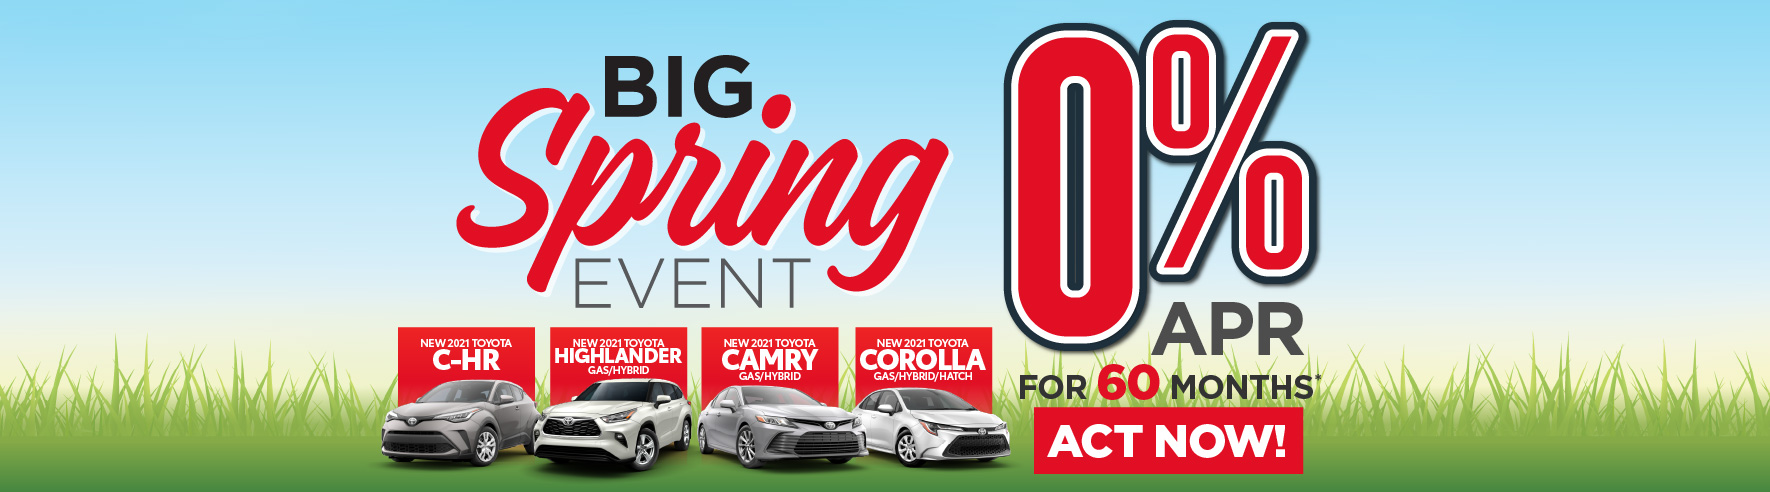 New 2020 Toyota Highlander, Sienna and 2021 Corolla 0% APR for 48 months - ACT NOW